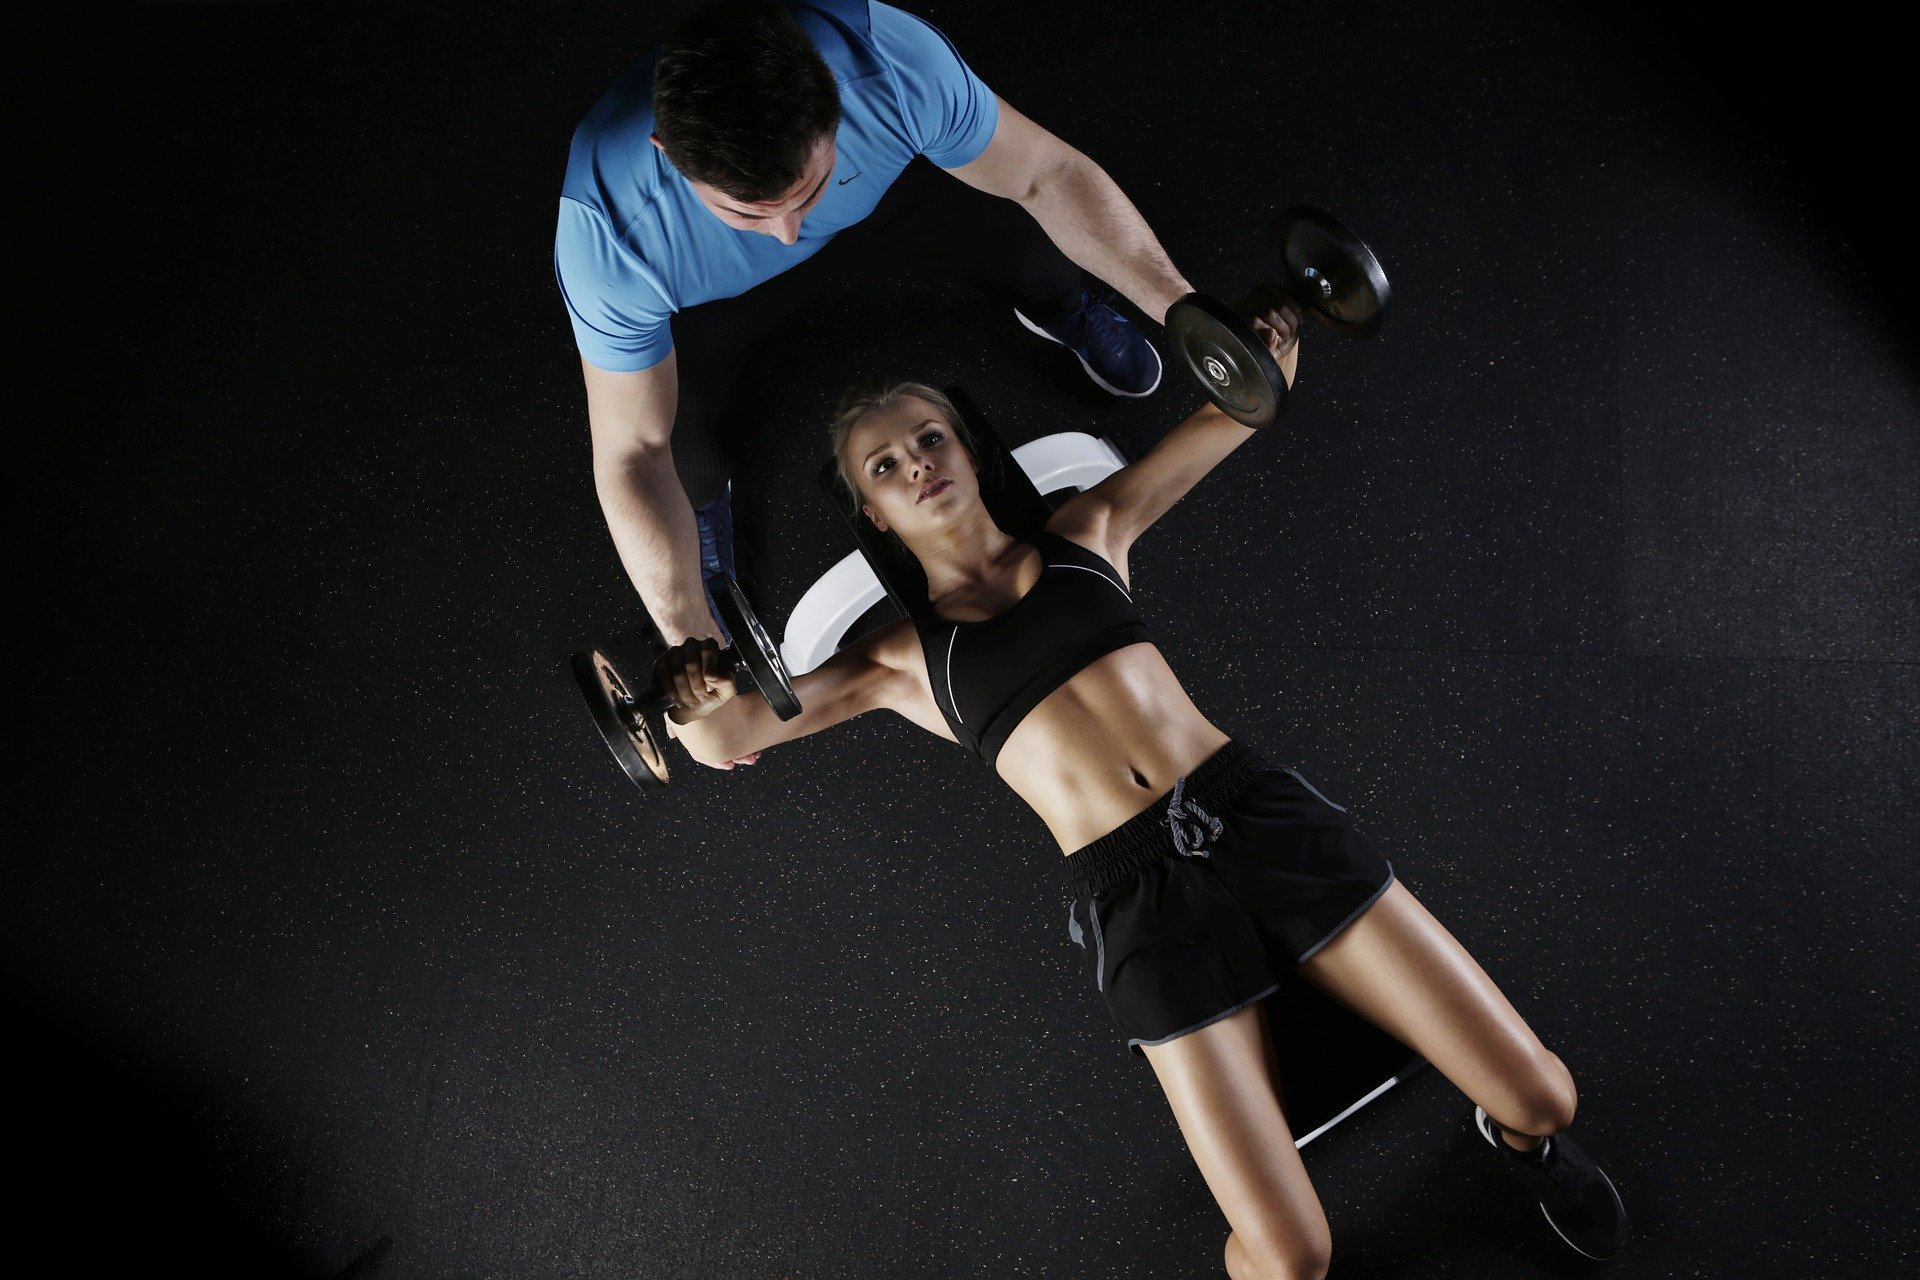 Women Gym Workout Images 4